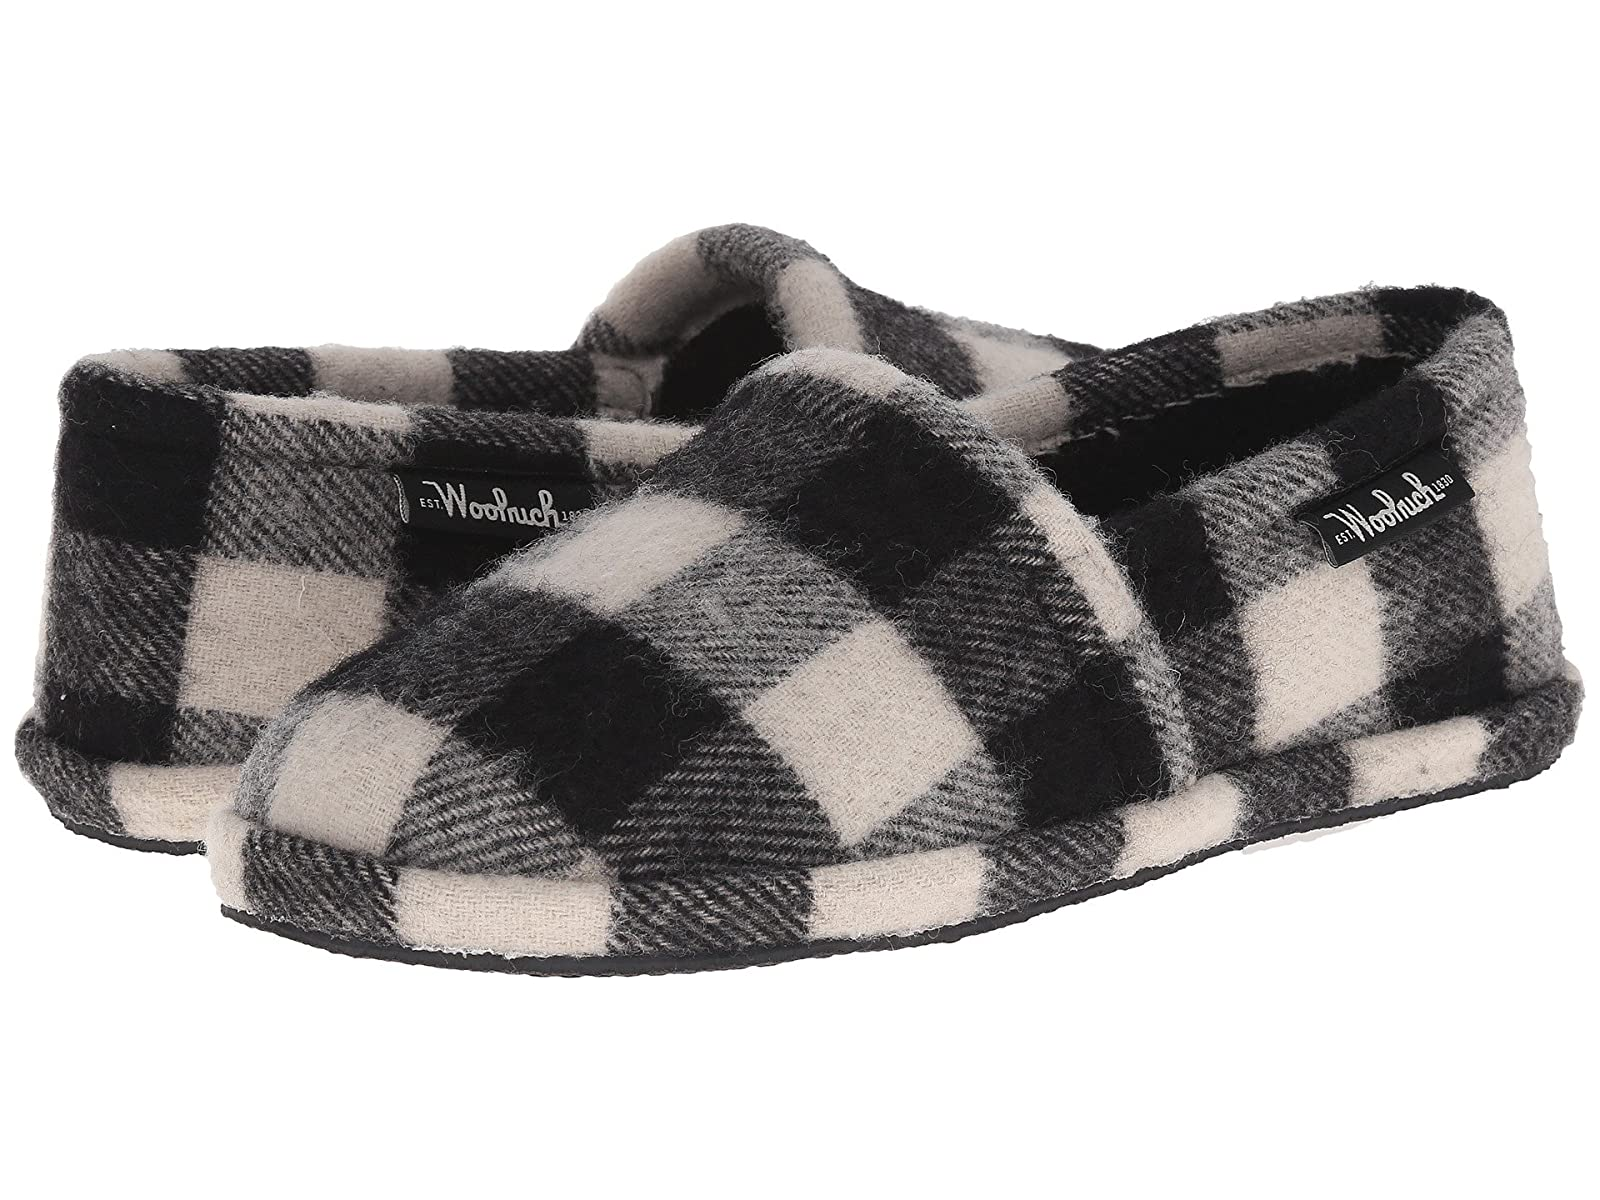 Woolrich Chatham ChillCheap and distinctive eye-catching shoes